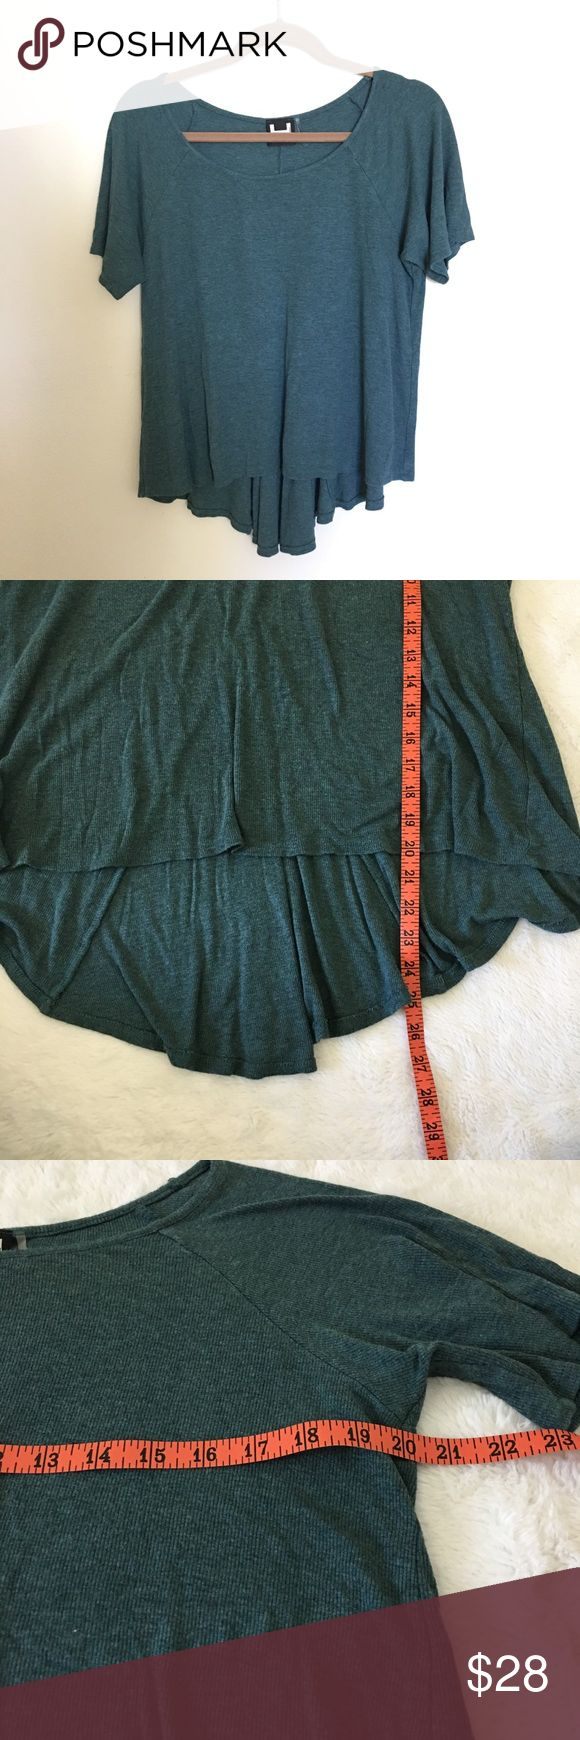 H by Bordeaux ribbed hi/low drapey top. Size large H by Bordeaux ribbed tee with cropped front and longer back. Drapey swing style, teal/green color. Size large. Perfect to wear with high waisted jeans and ankle booties. EUC. Offers welcome. Bundle and save. H by Bordeaux Tops Tees - Short Sleeve